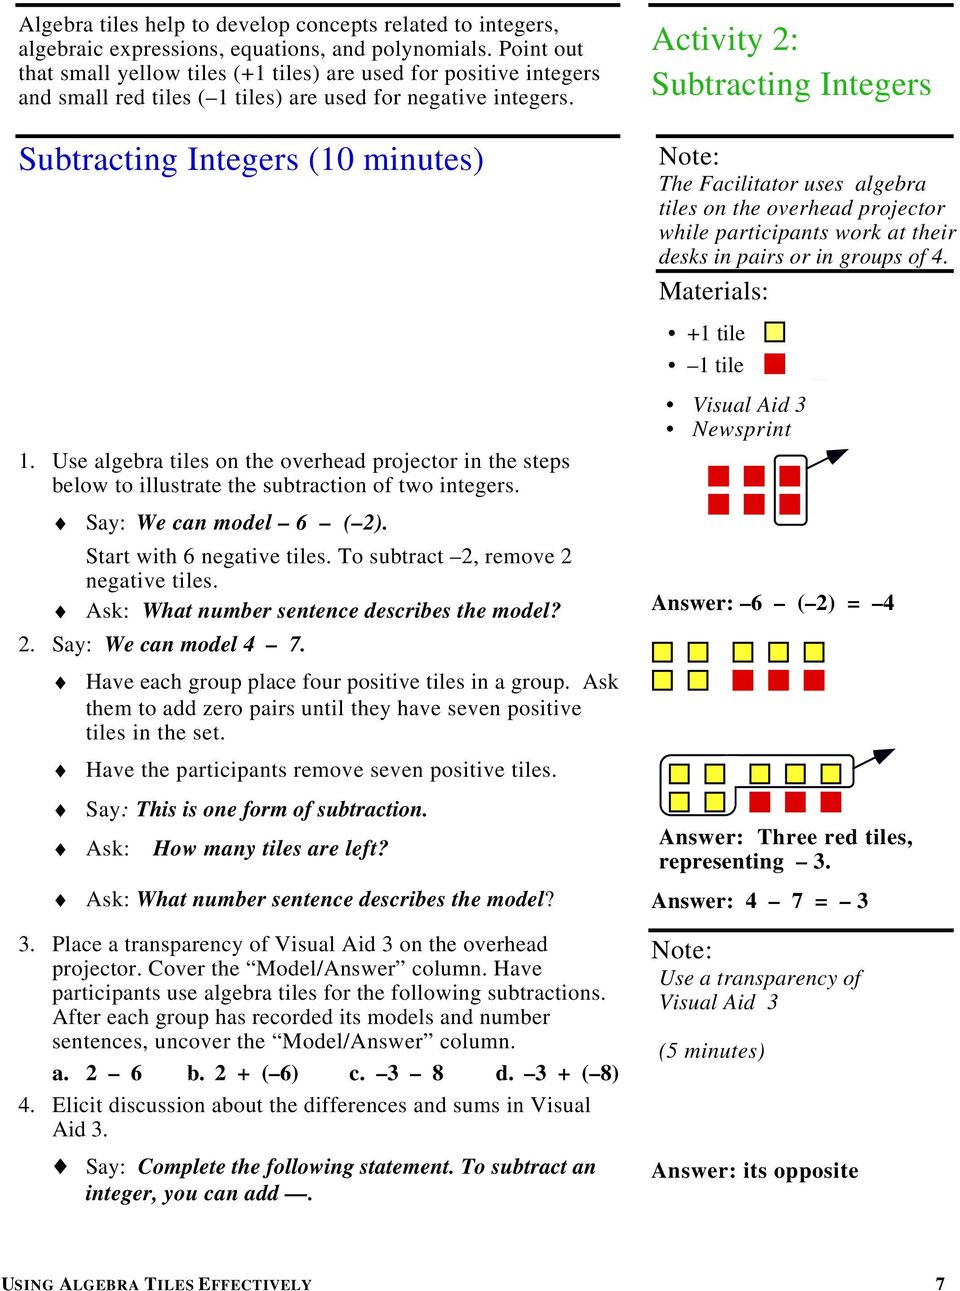 Subtracting Integers (10 minutes) Activity 2: Subtracting Integers The Facilitator uses algebra tiles on the overhead projector while participants work at their desks in pairs or in groups of 4.